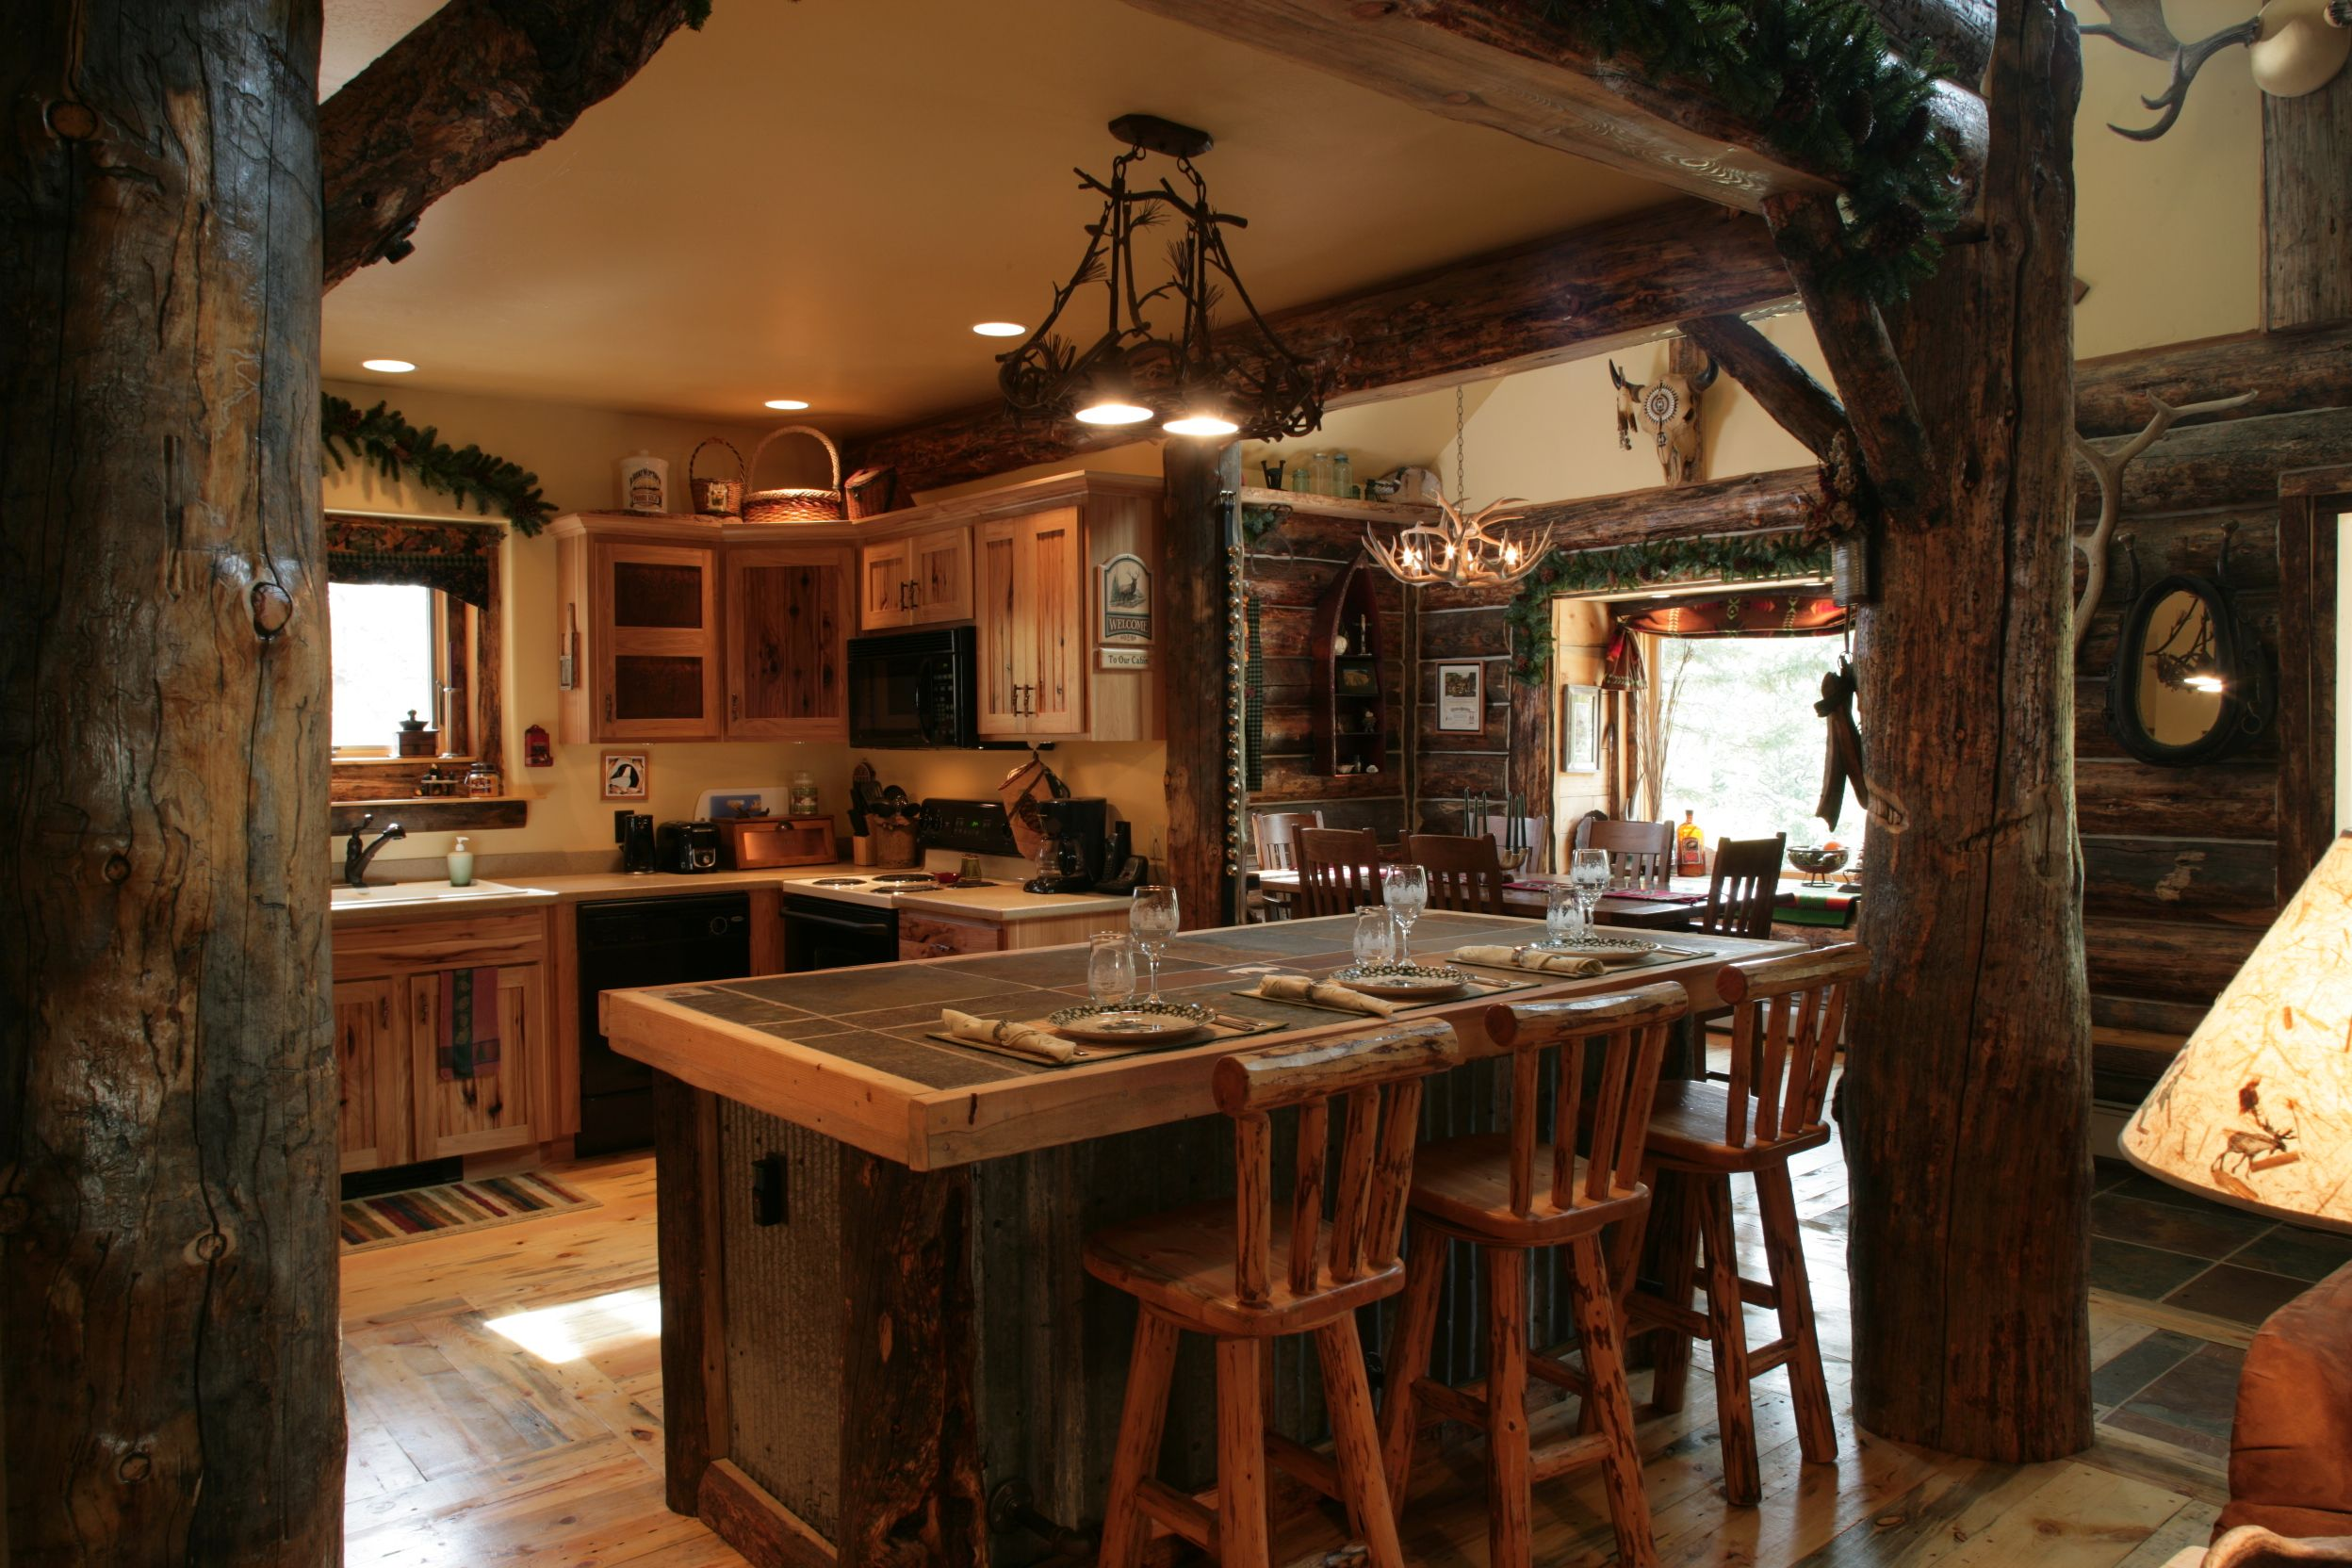 Hunting lodge interior - A Great Kitchen Idea For The Hunting Lodge